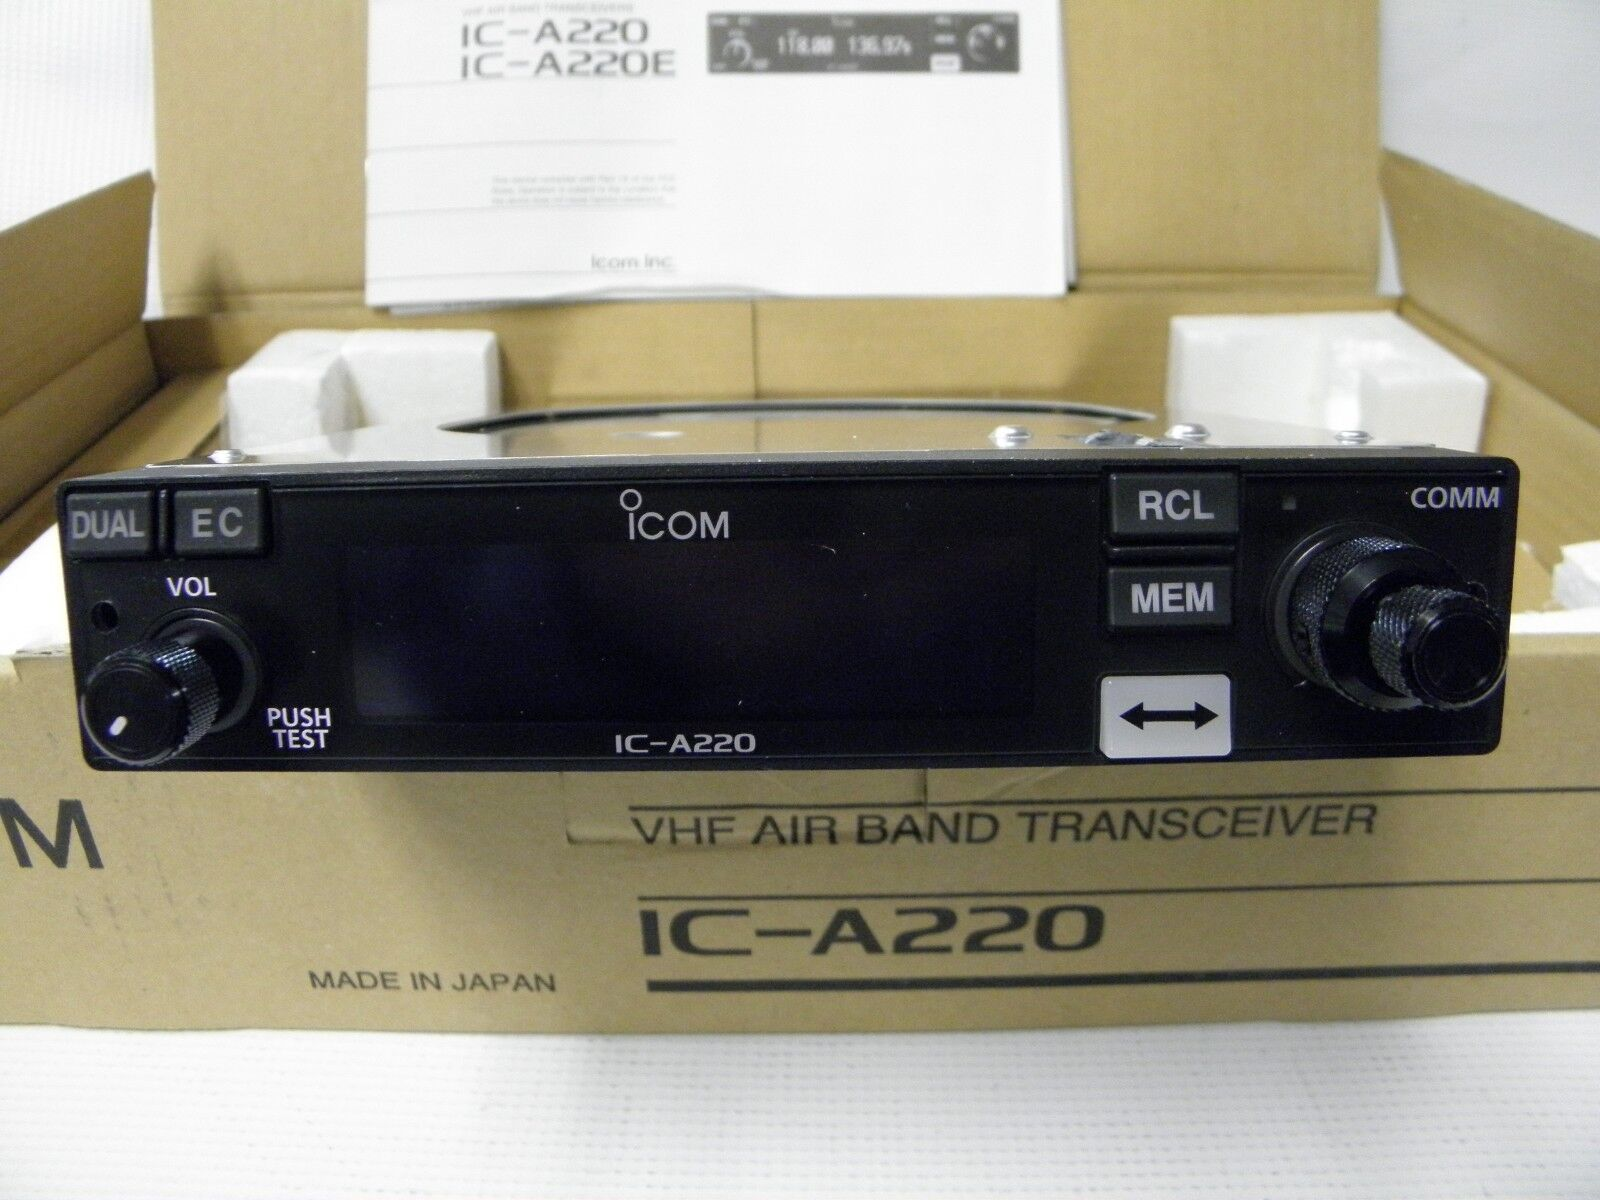 Icom IC-A220 (New) Panel Mount Com Transceiver **$100 FACTORY REBATE**